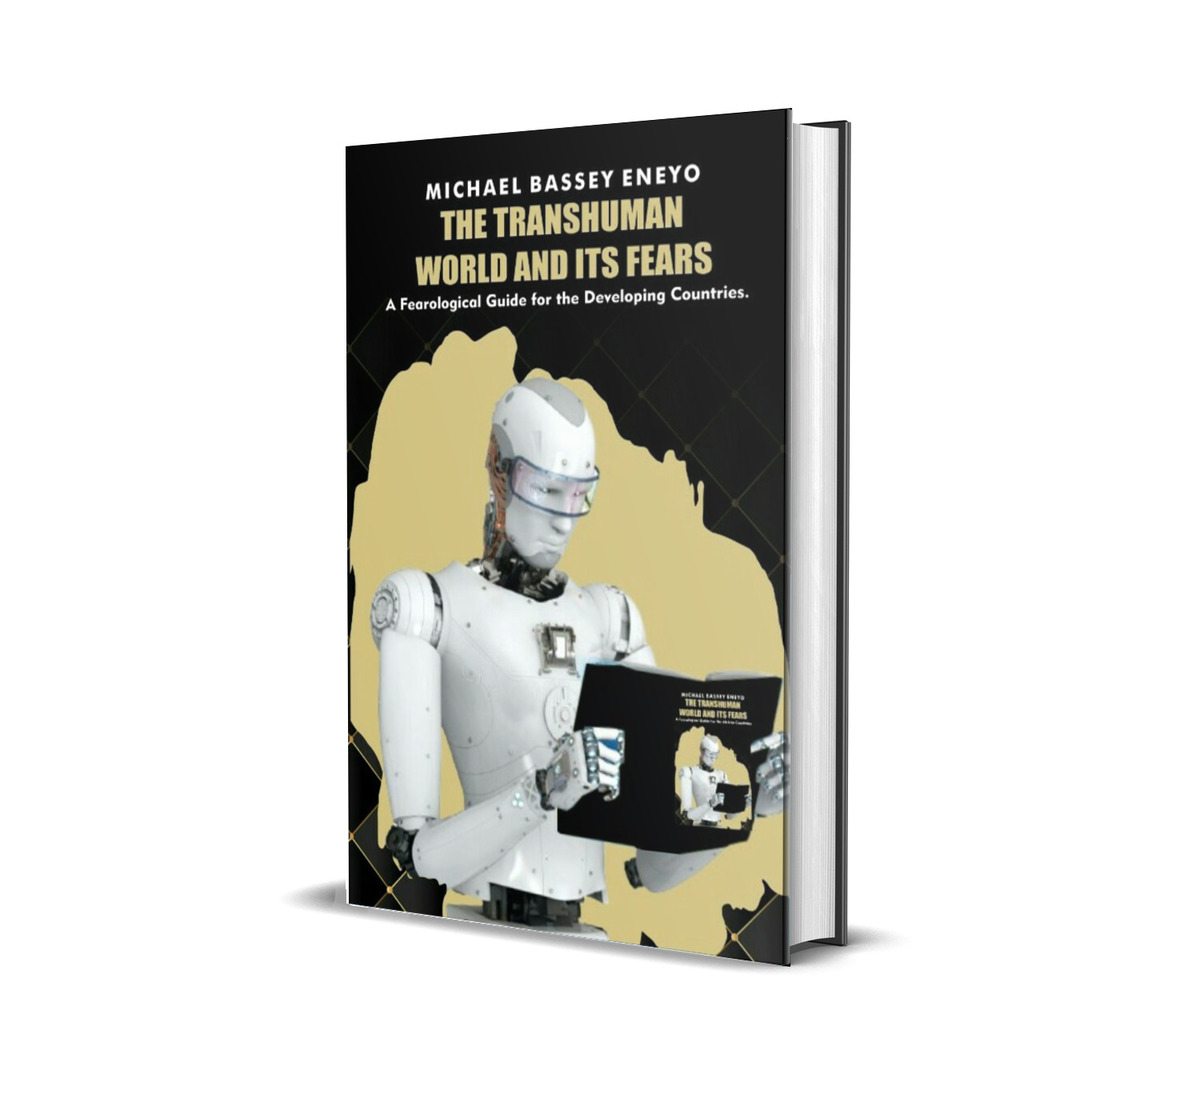 THE TRANSHUMAN WORLD AND ITS FEARS